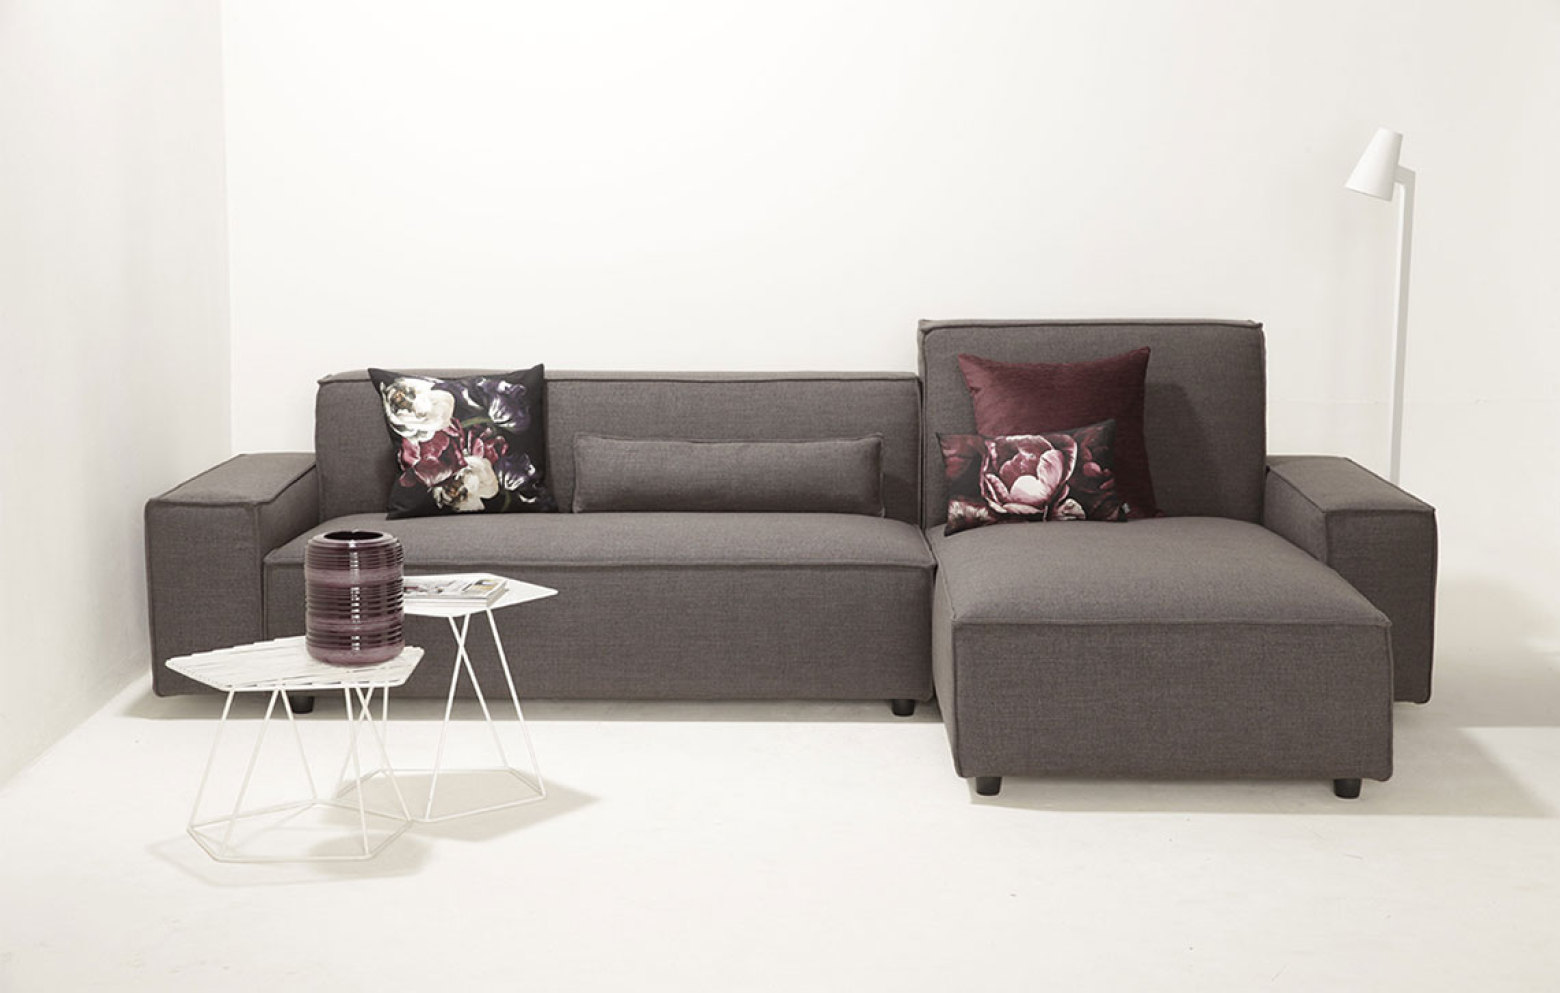 bari sofas online outlet who 39 s perfect. Black Bedroom Furniture Sets. Home Design Ideas